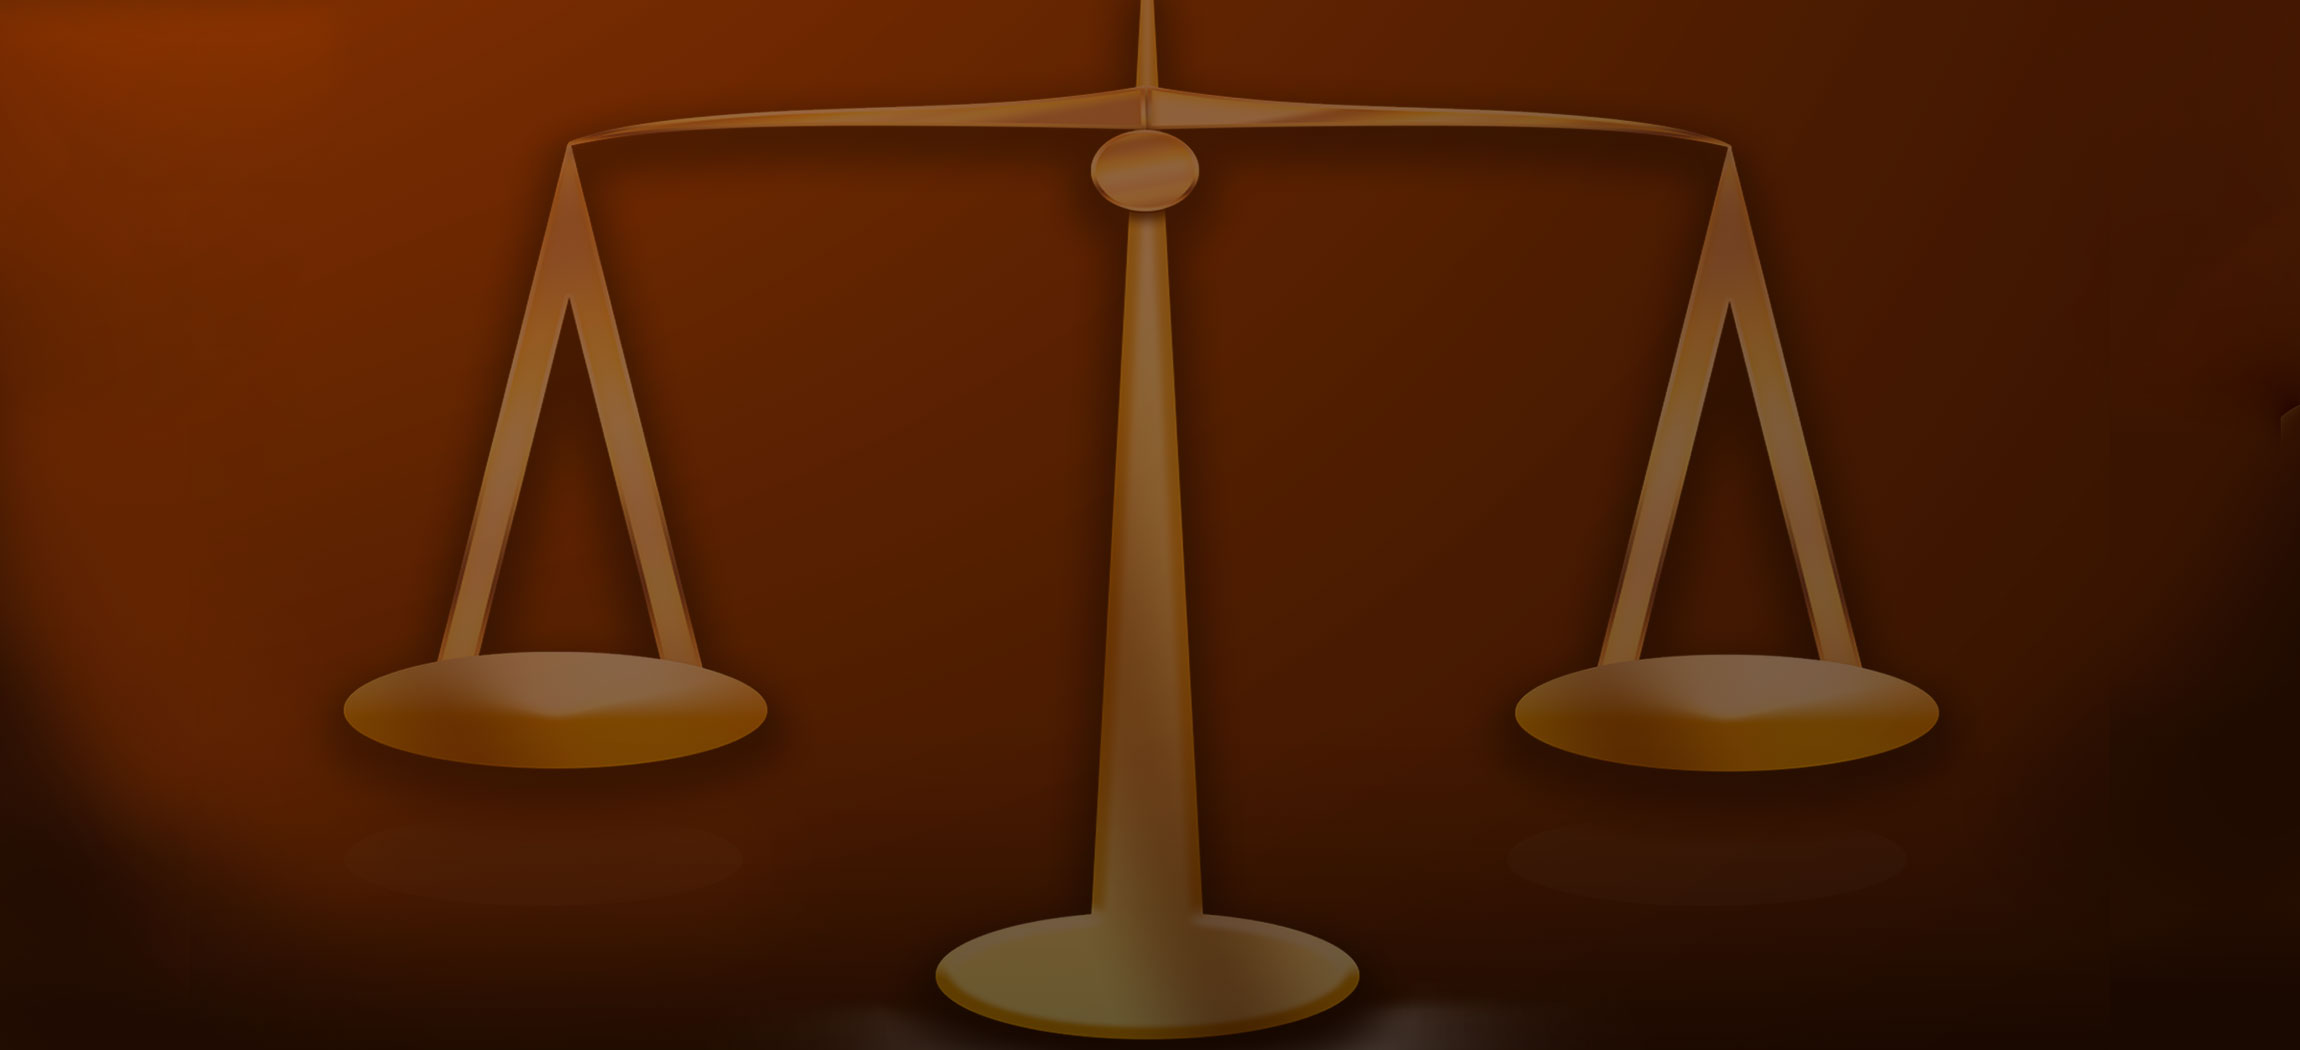 Court System Gavel Court Generic Sentencing Court Appearance